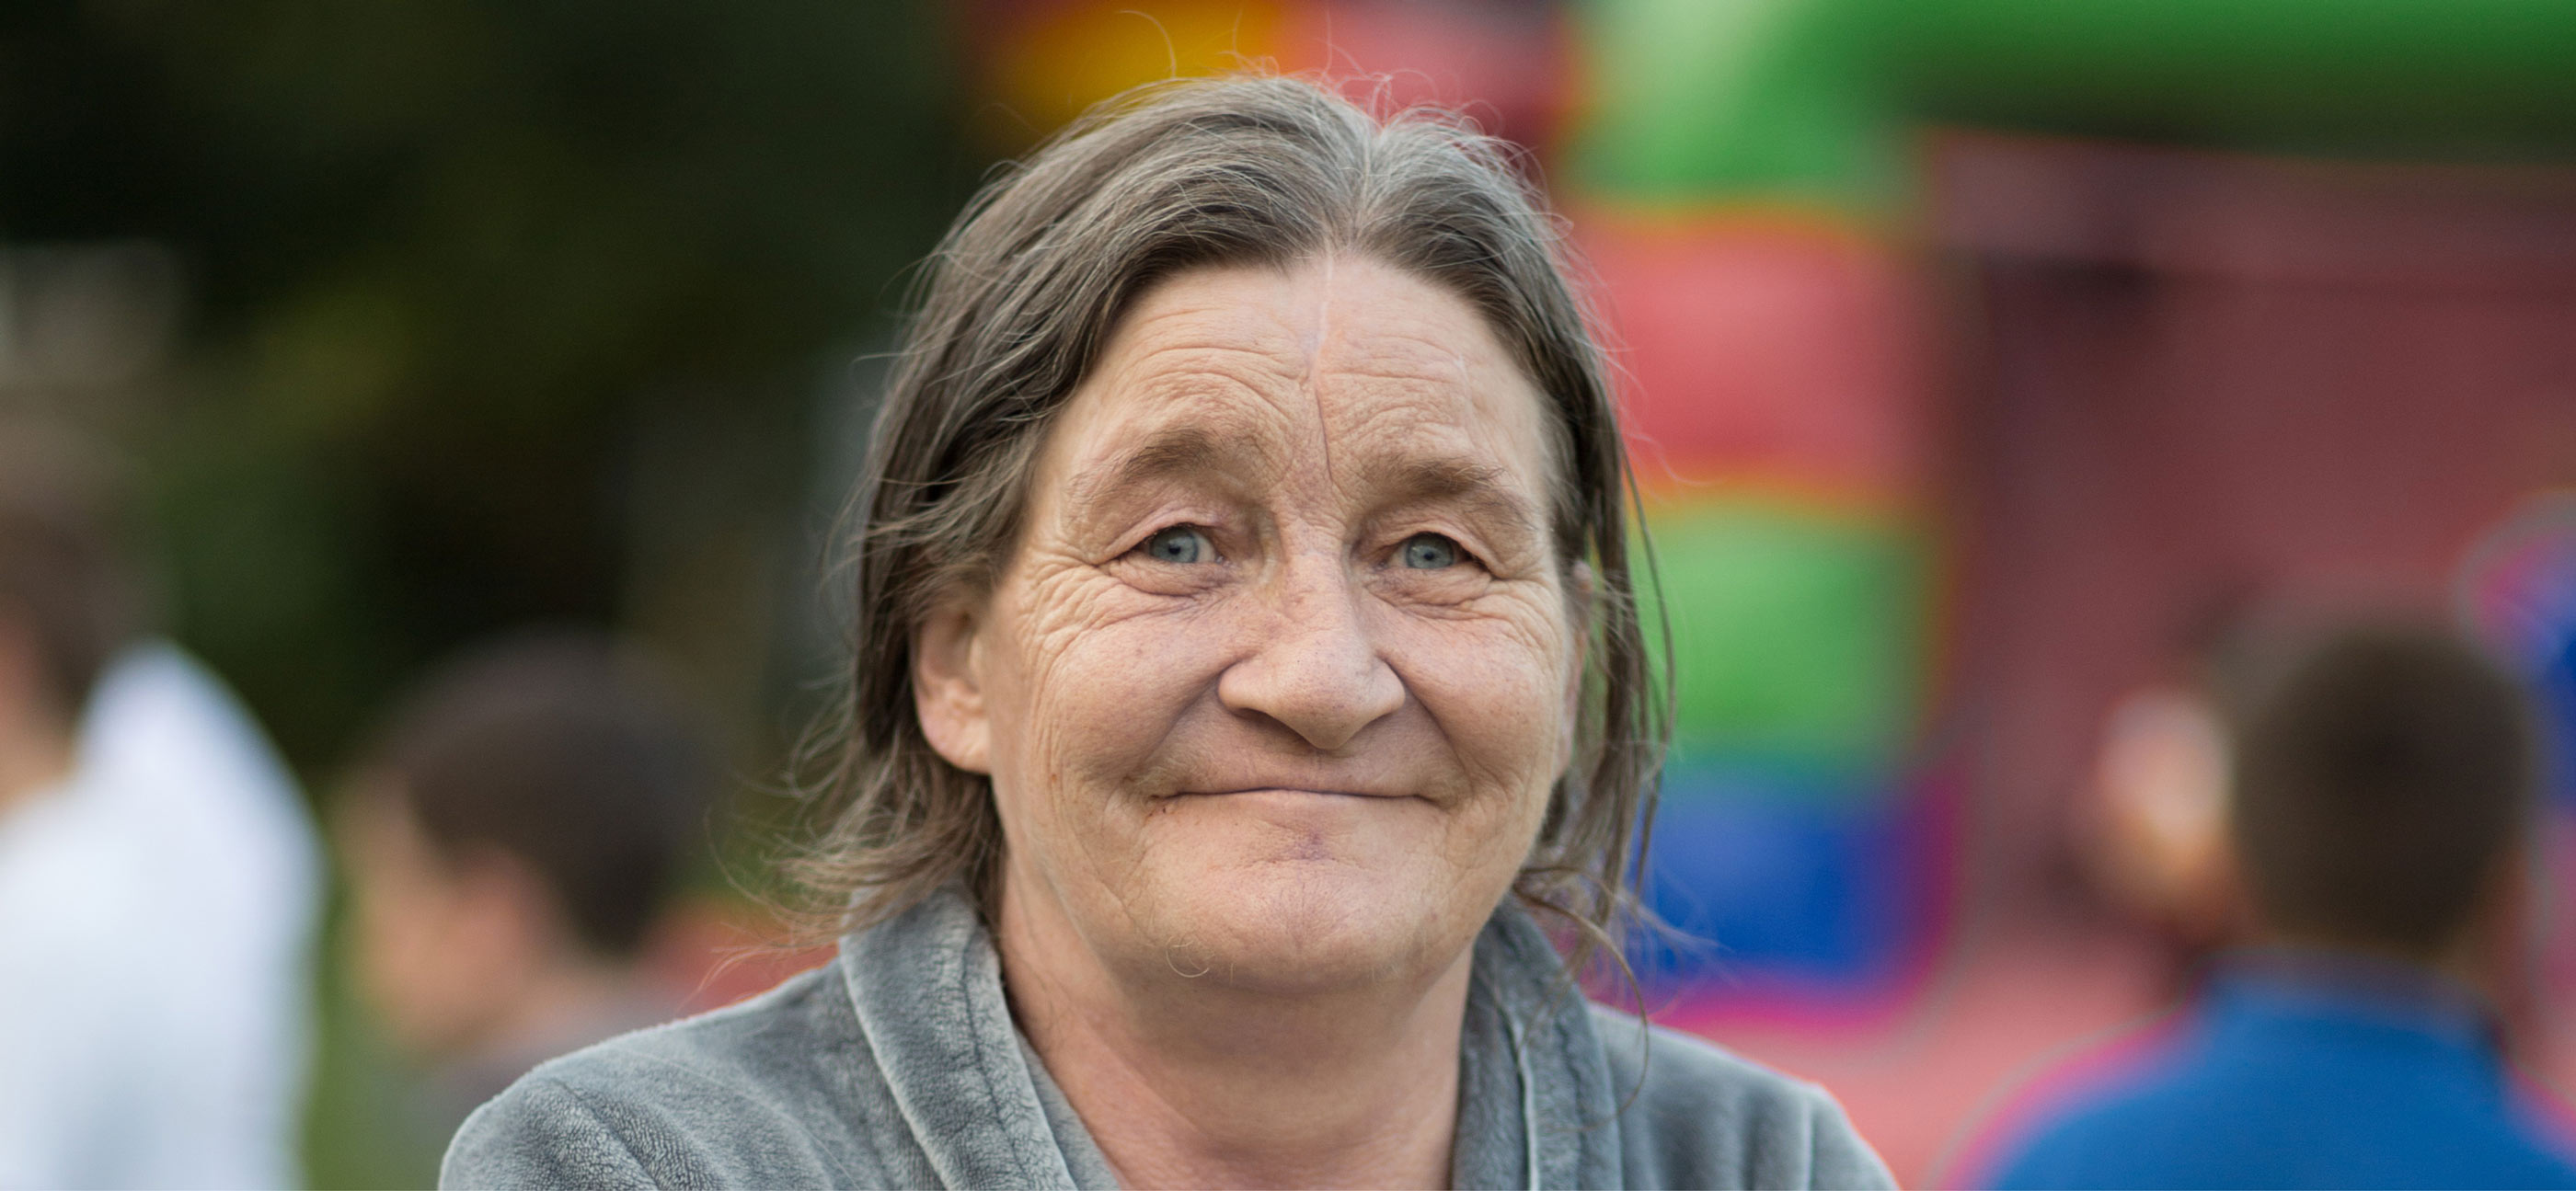 Novas content creation. Photograph of smiling middle-aged woman.